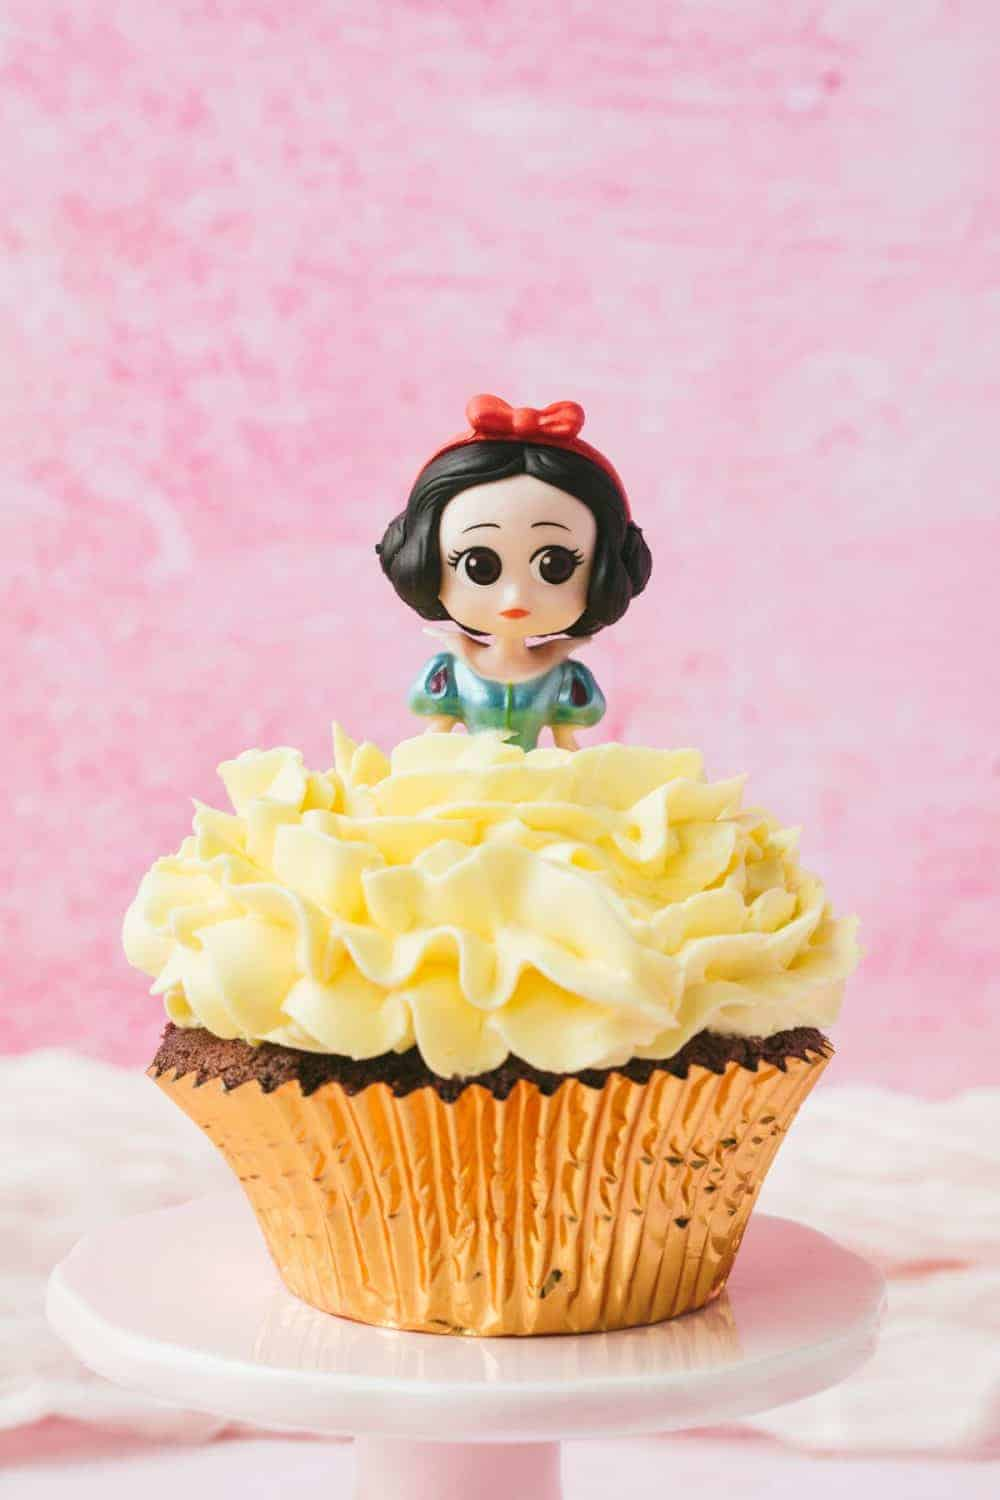 A snow white cupcake with yellow icing.